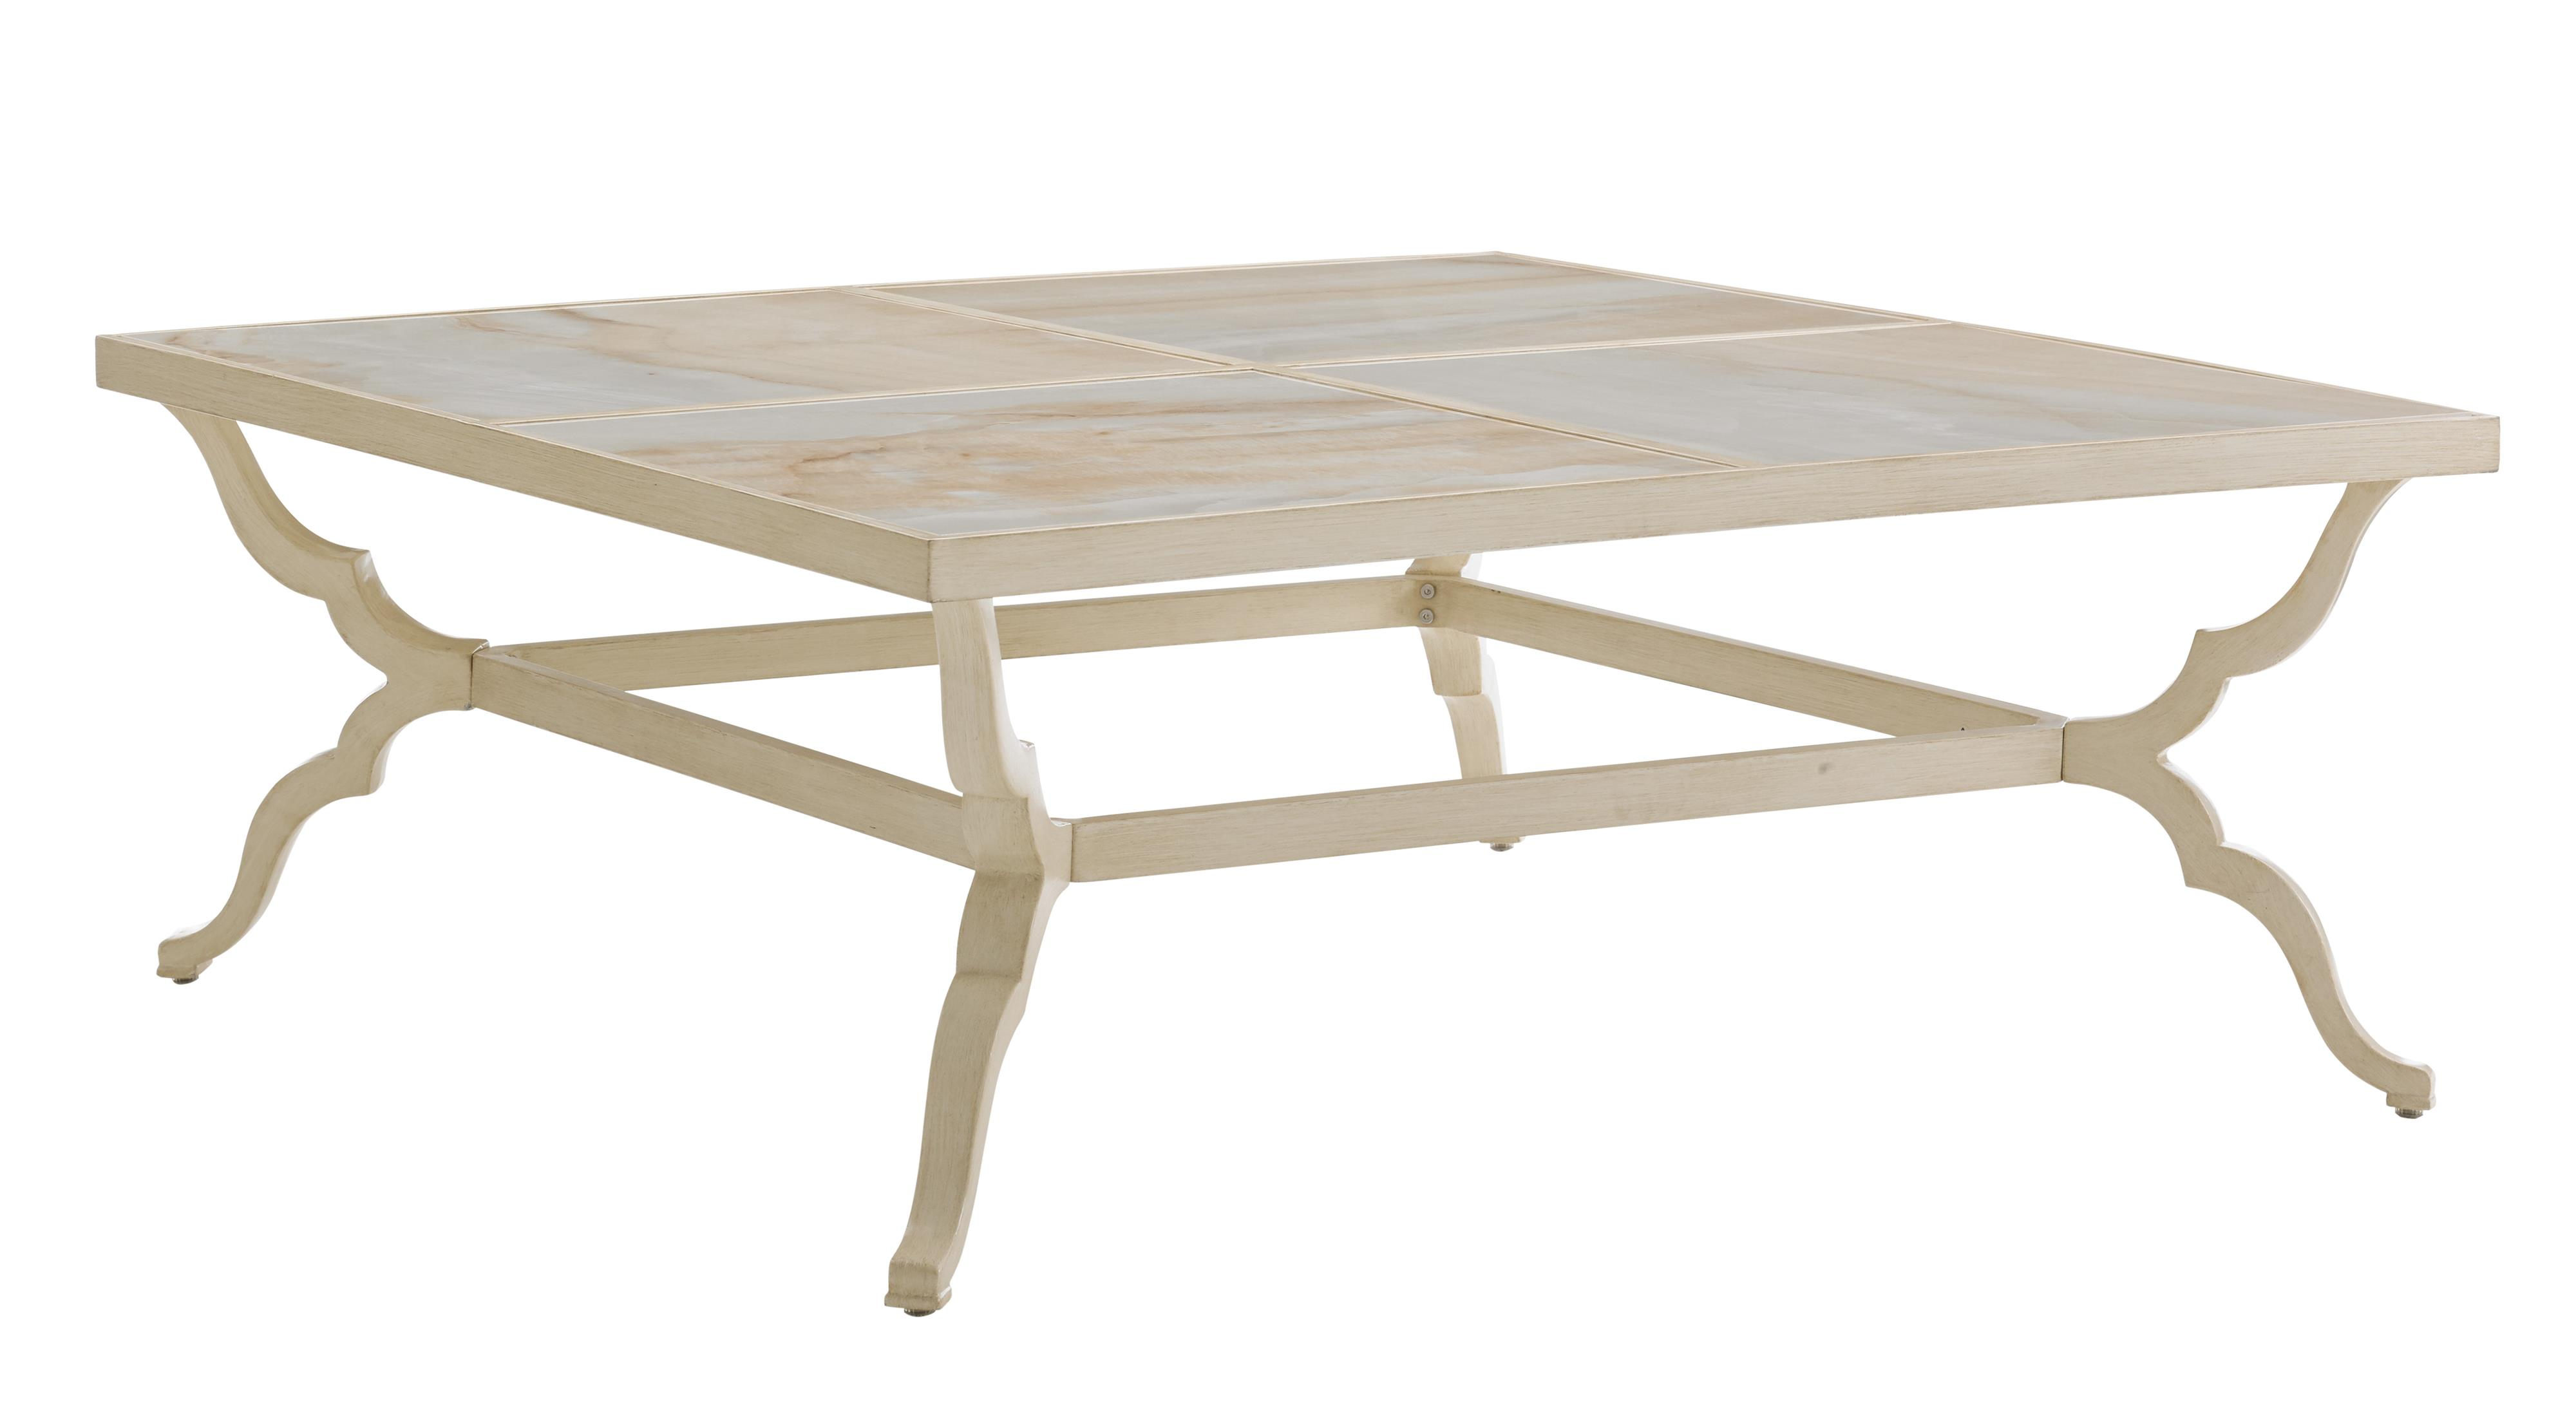 Misty Garden Square Cocktail Table w/ Porcelain Top by Tommy Bahama Outdoor Living at Baer's Furniture